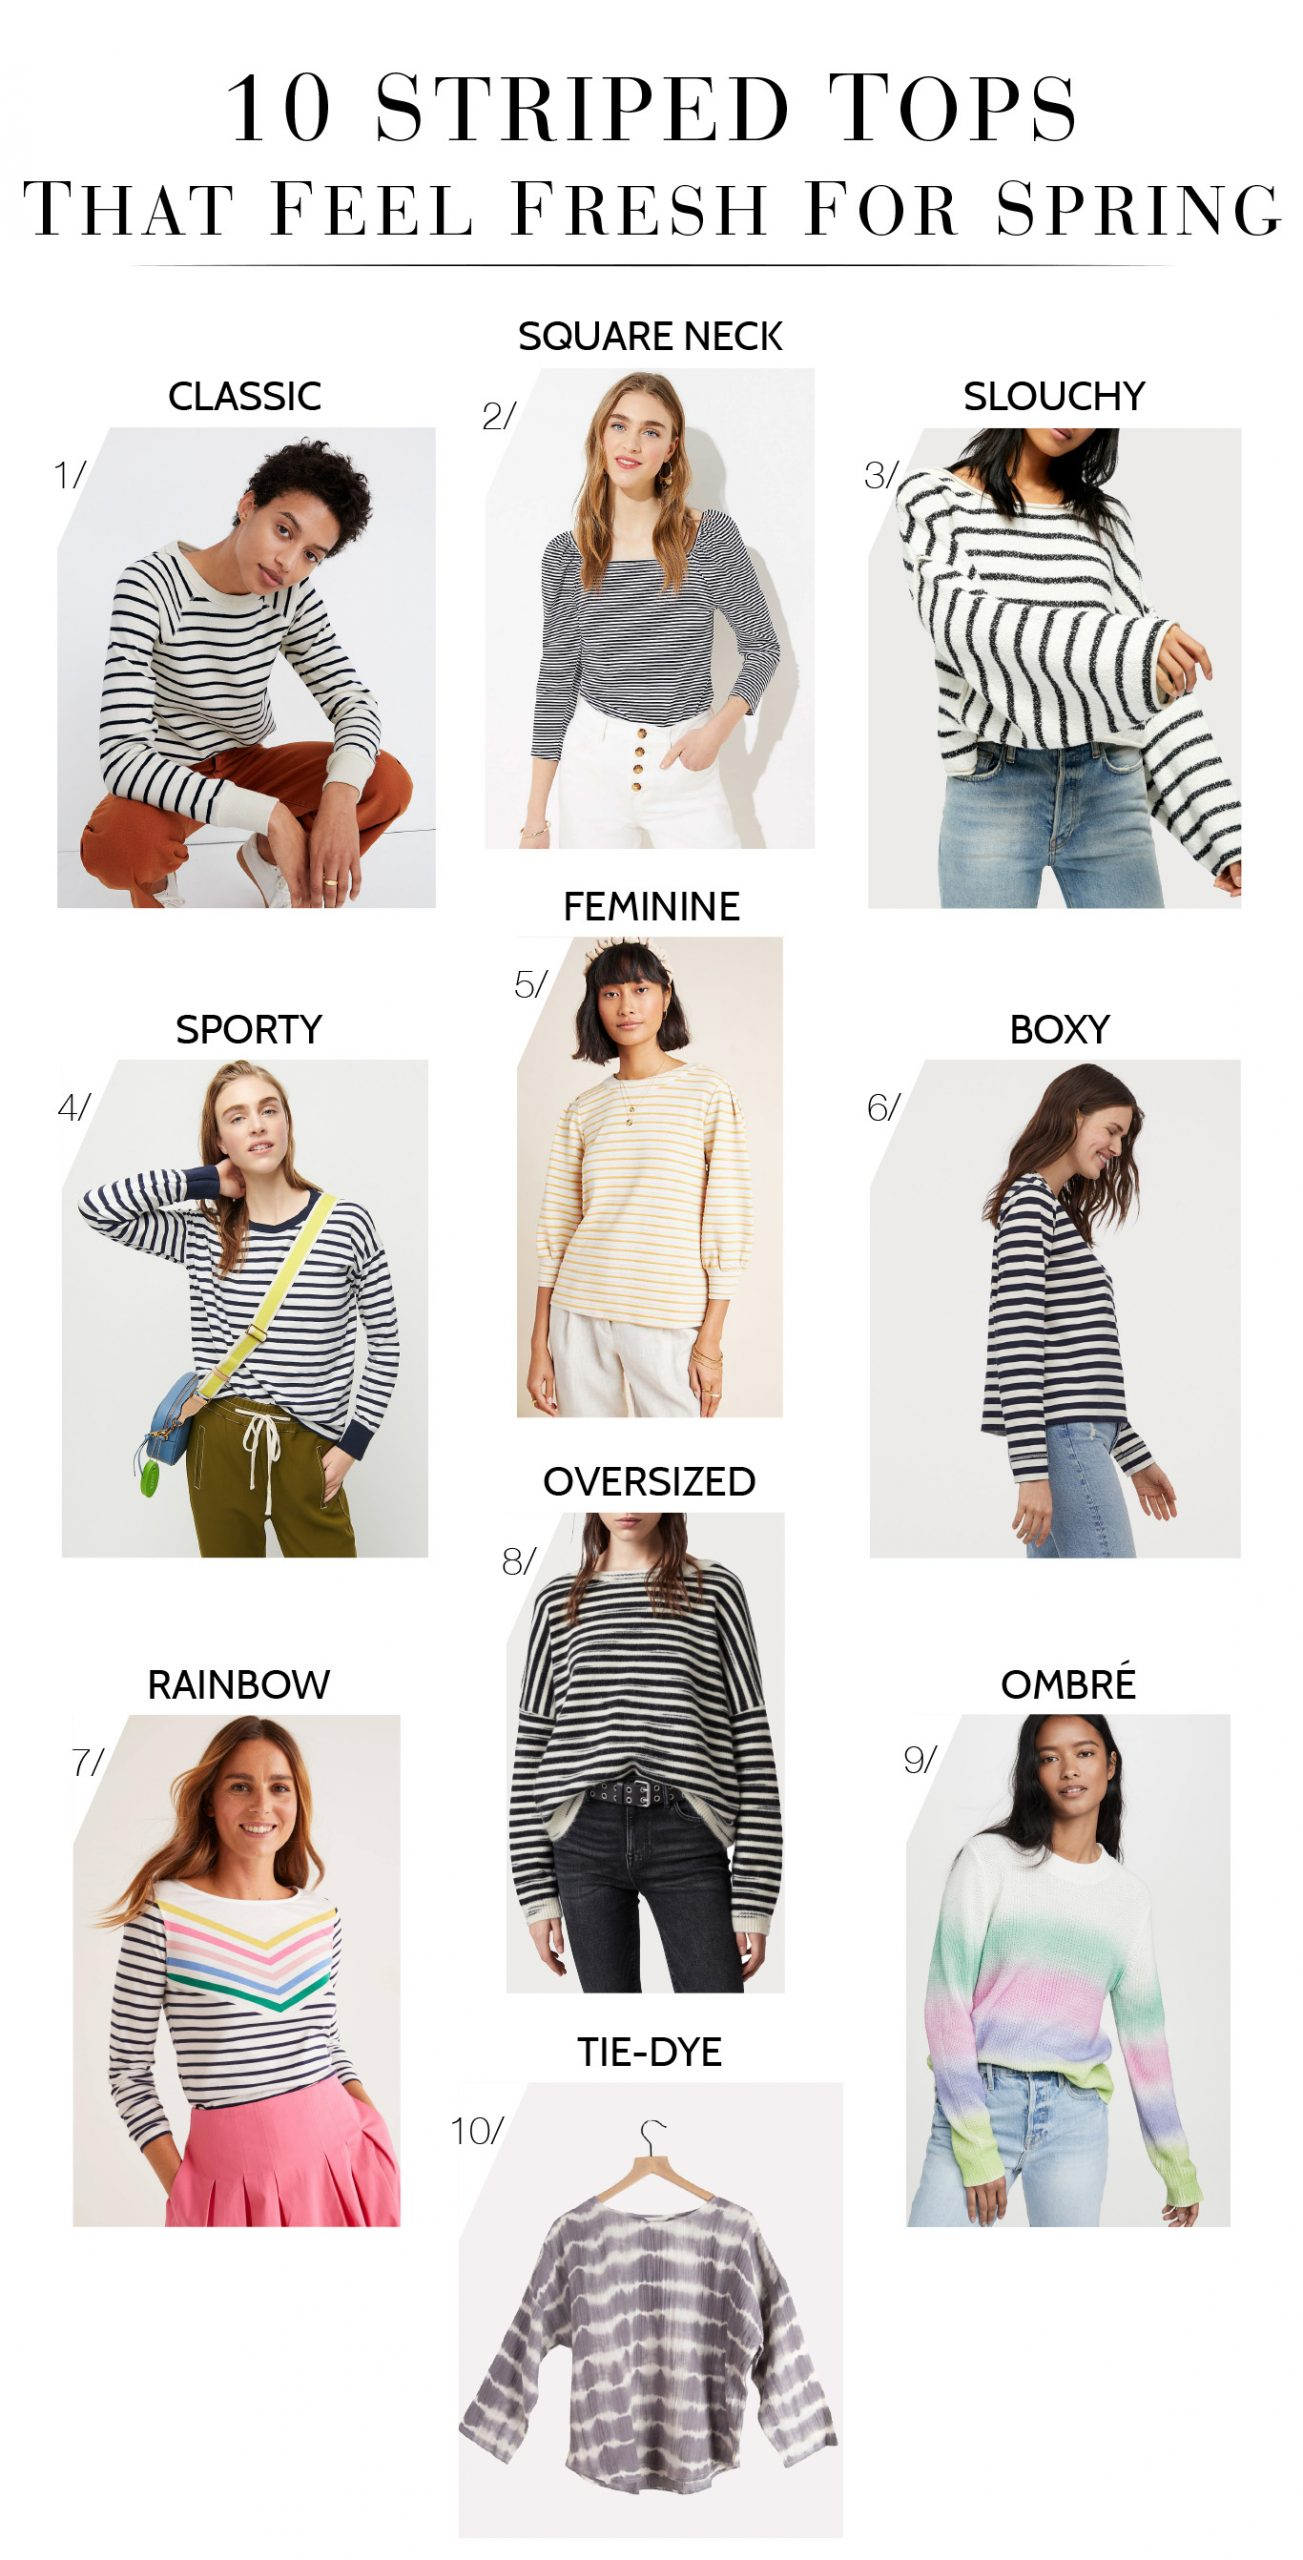 Top Mission For Spring: Find perfect striped shirts for cute outfit inspo. We❤️these 10 — from rainbow striped long-sleeve shirts to oversized striped tops.